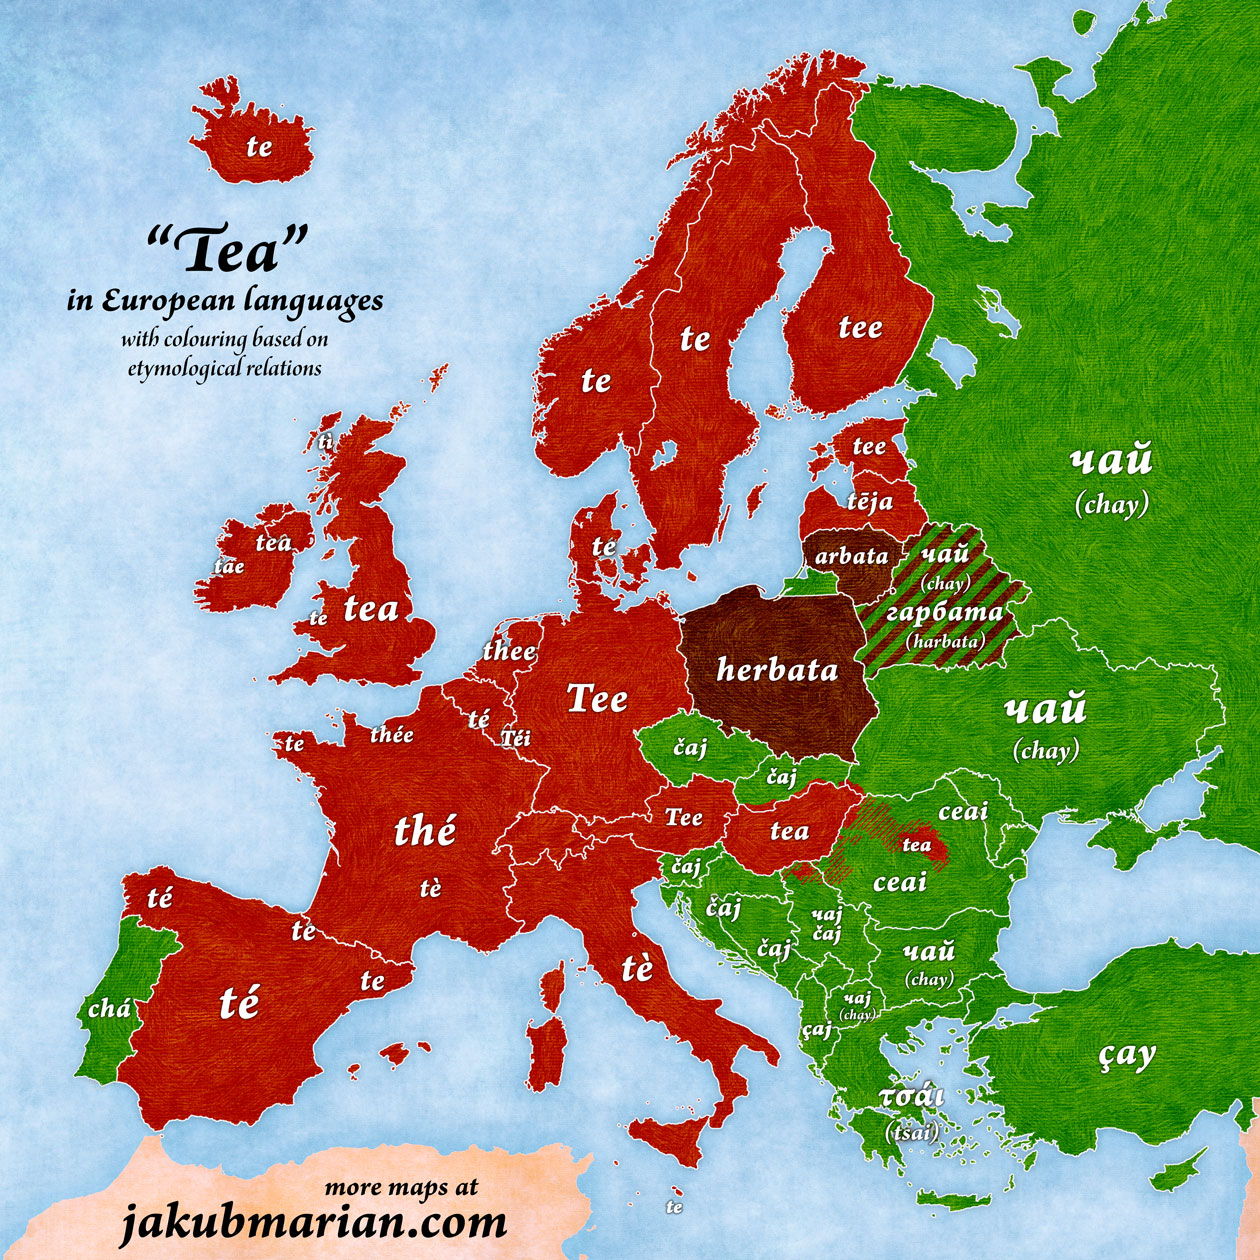 translations of tea into french german spanish italian and other languages this map is available in